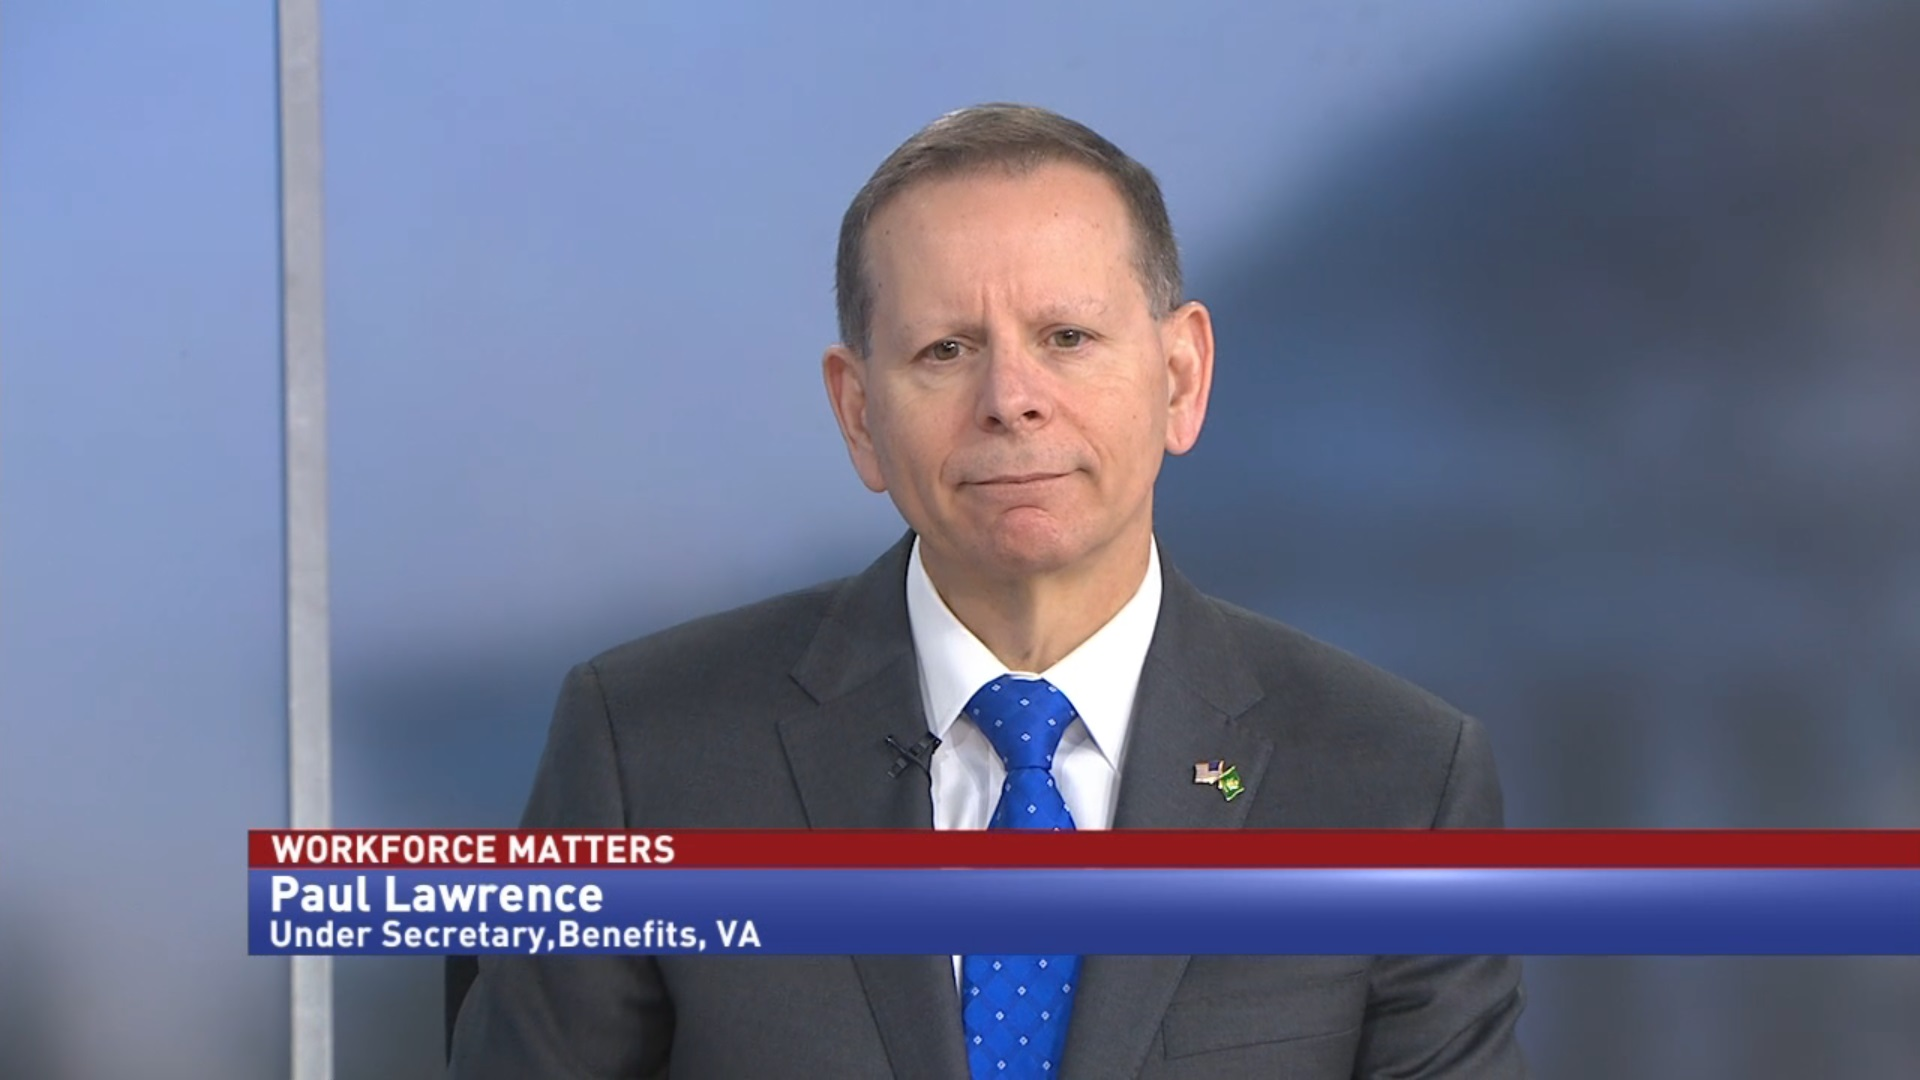 Under Secretary of Benefits at Veterans Affairs lays out priorities